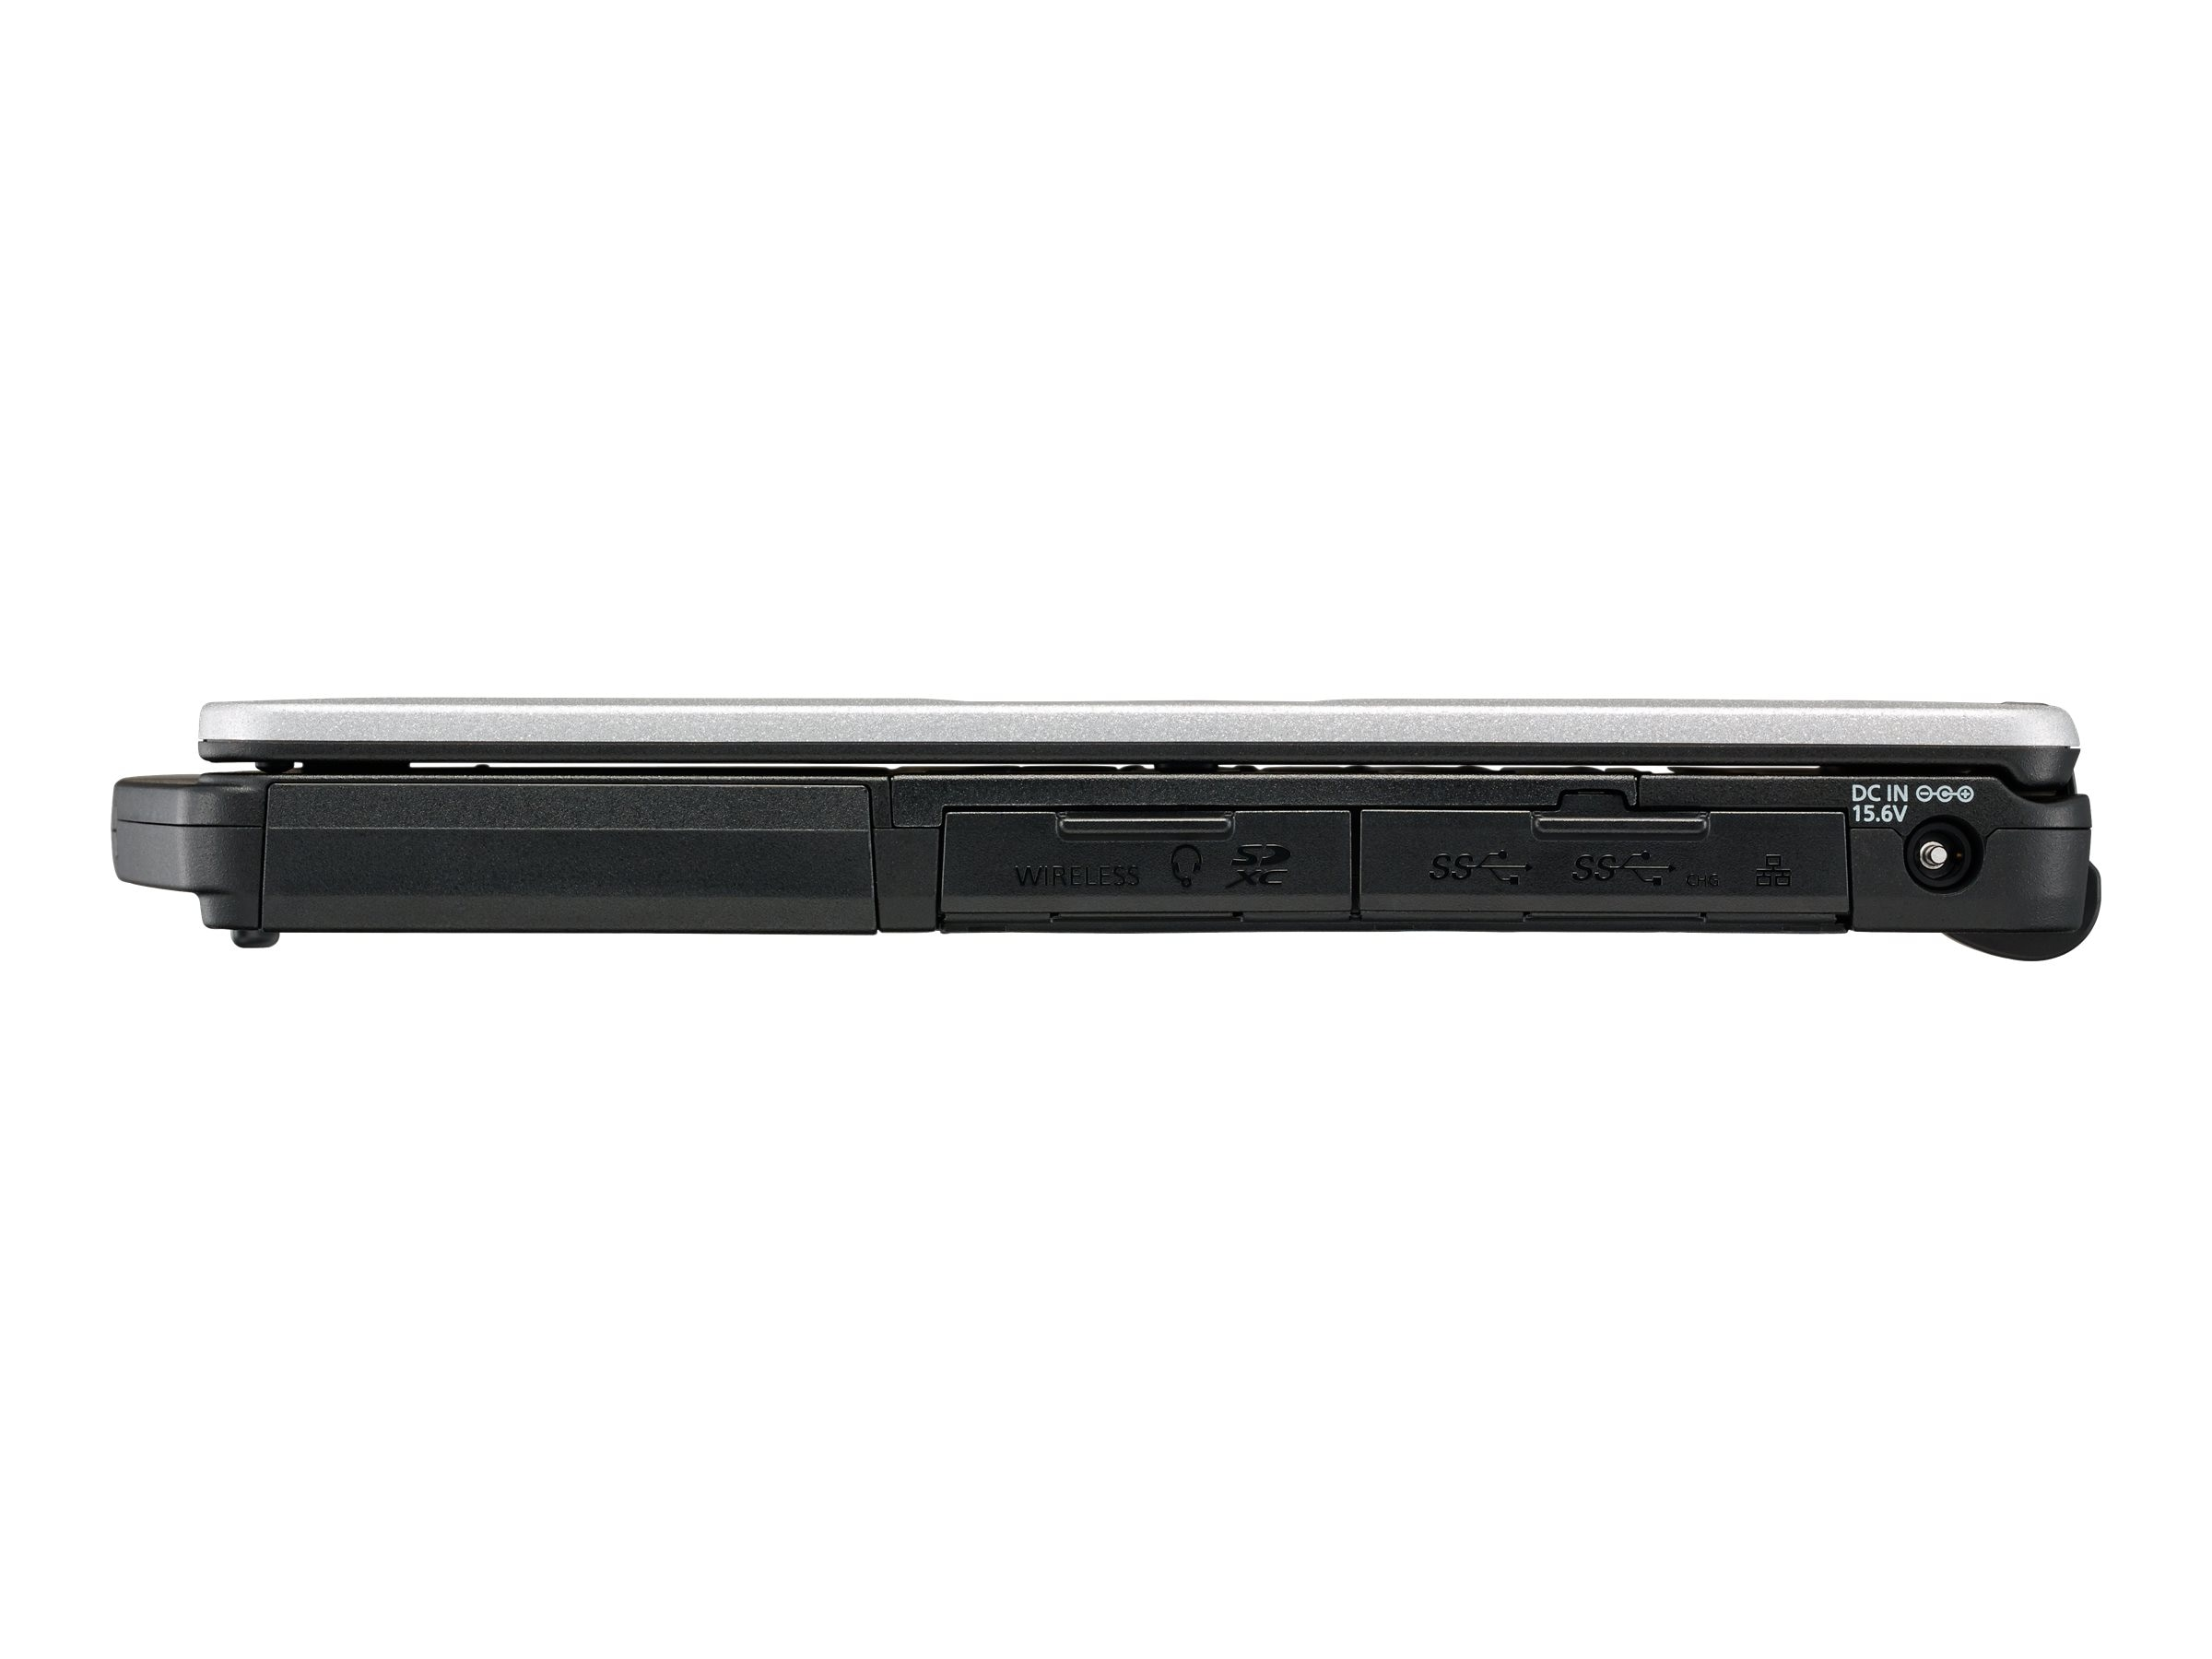 Panasonic Toughbook 54 2.4GHz Core i5 14in display, CF-54F3024KM